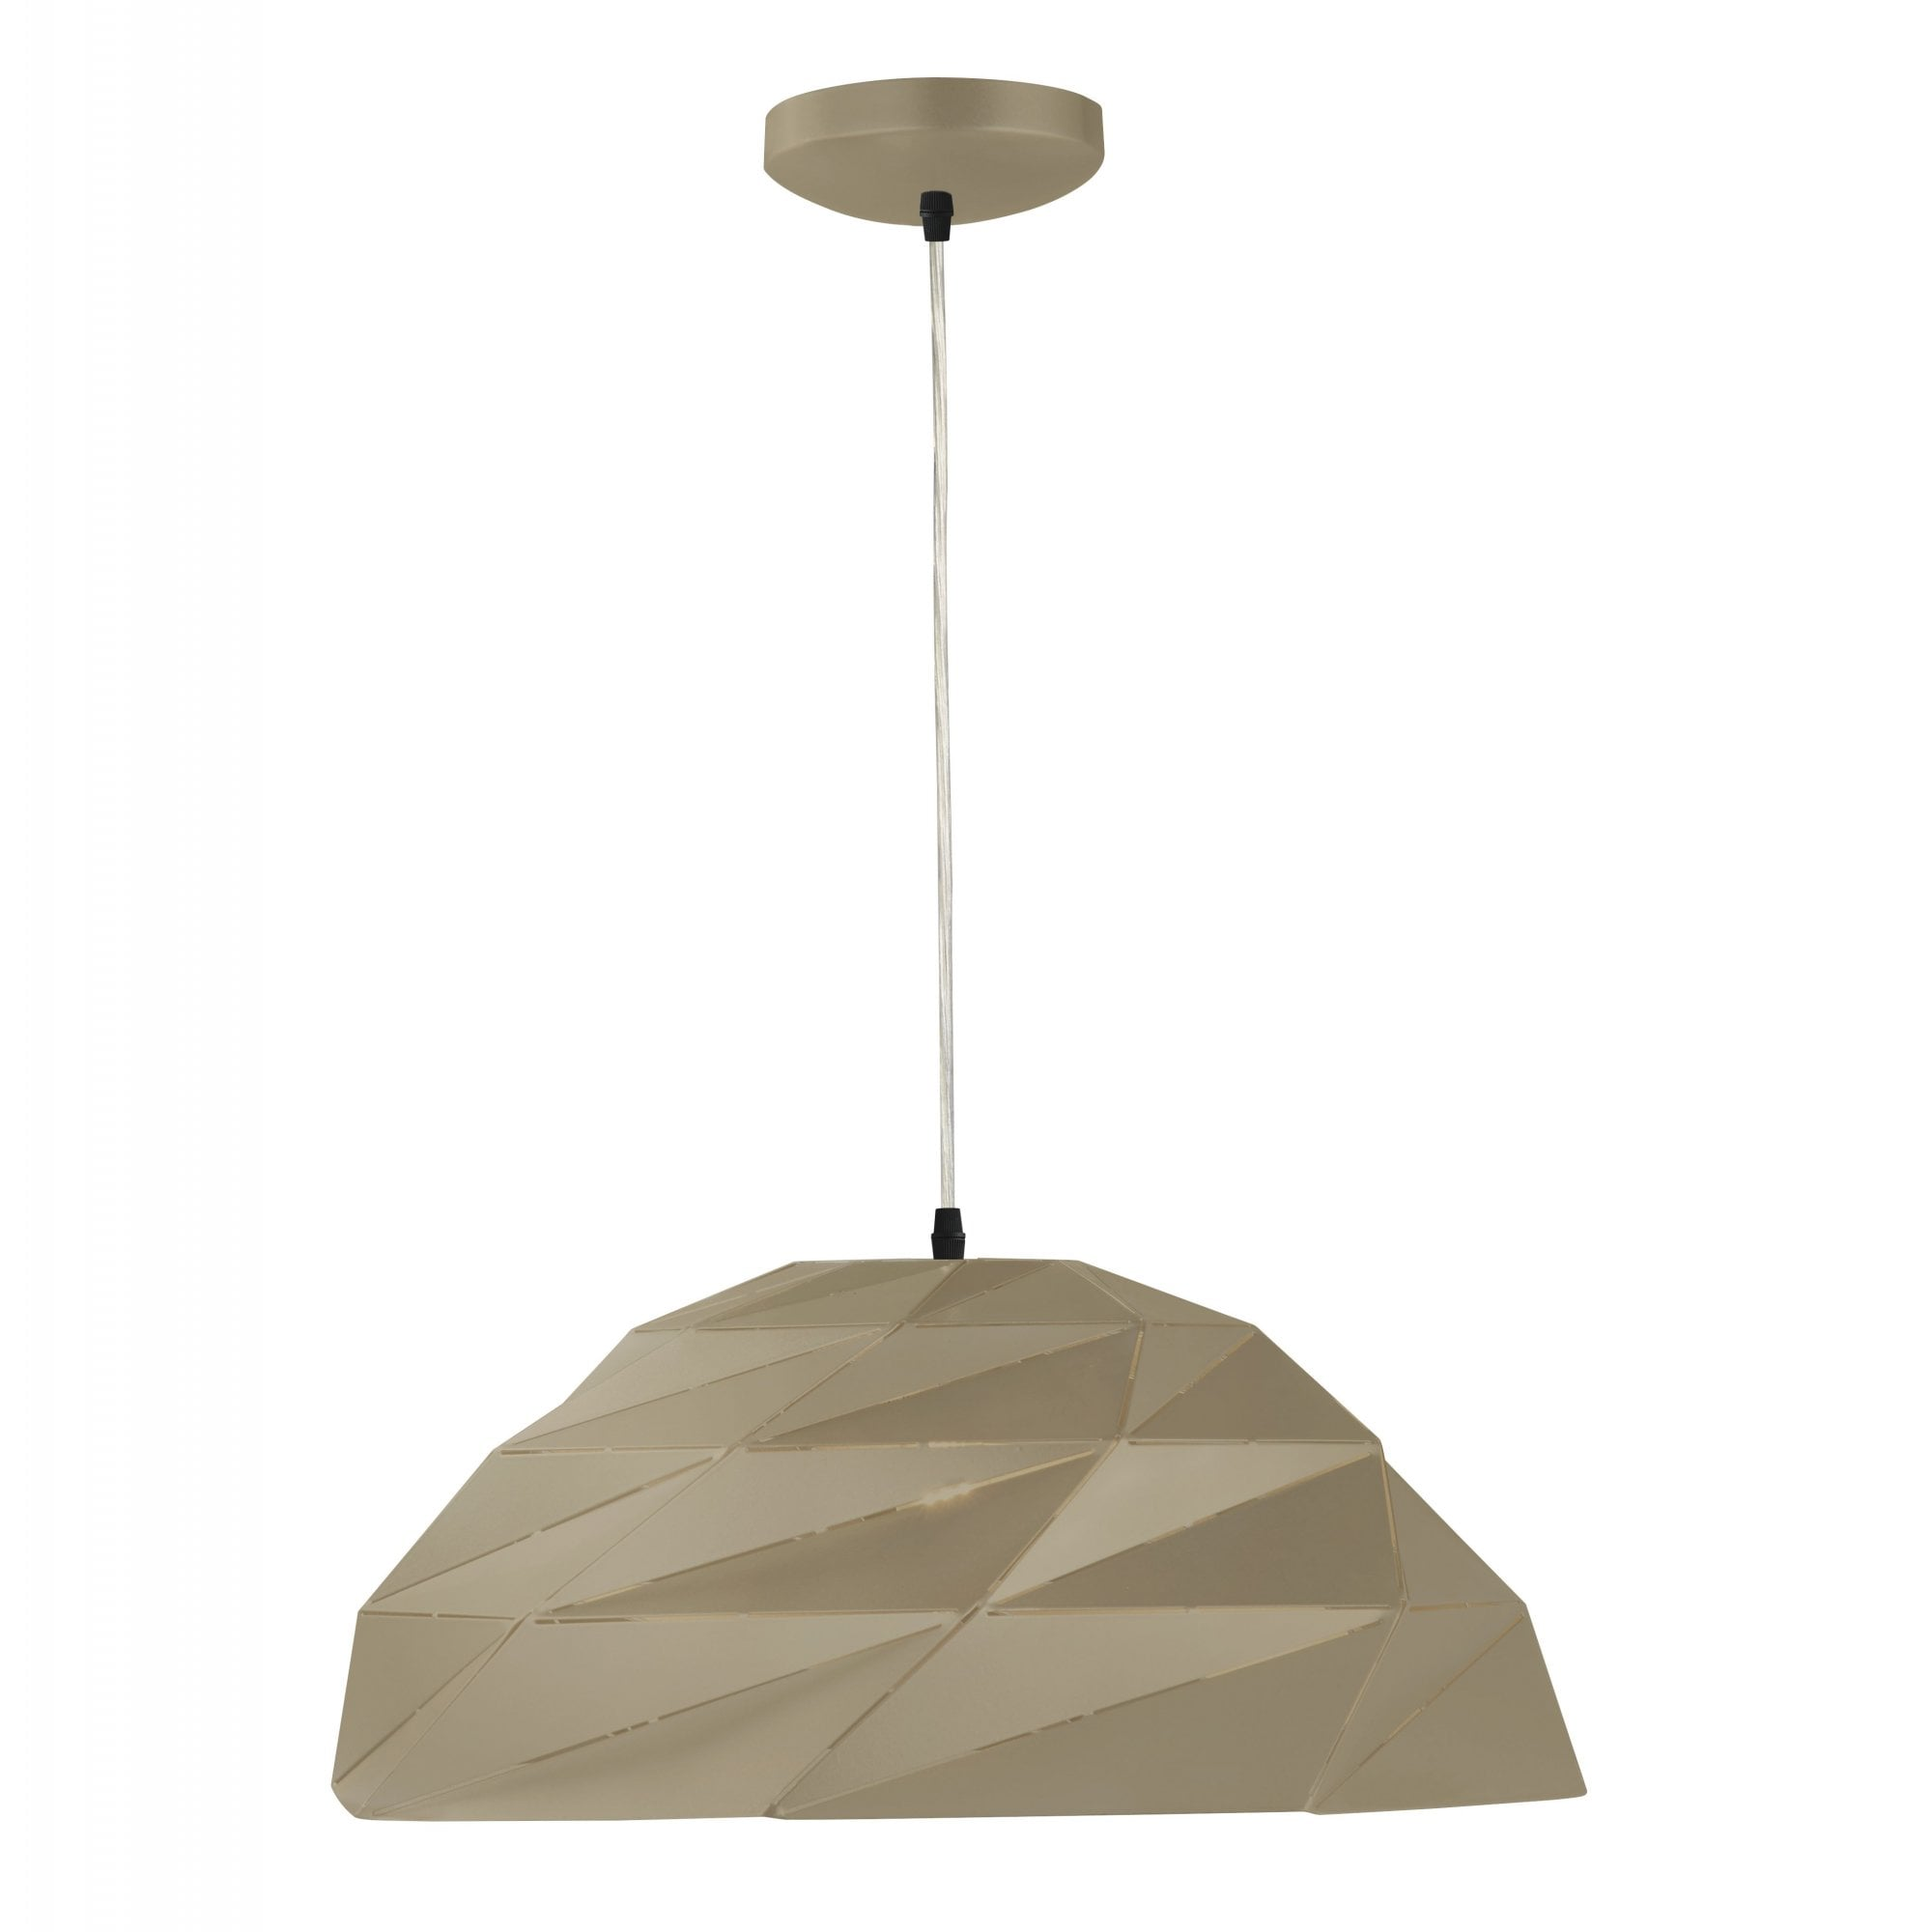 SEARCHLIGHT CONE CEILING PENDANT LIGHT IN BLACK FINISH AND GOLD INNER 7051BK